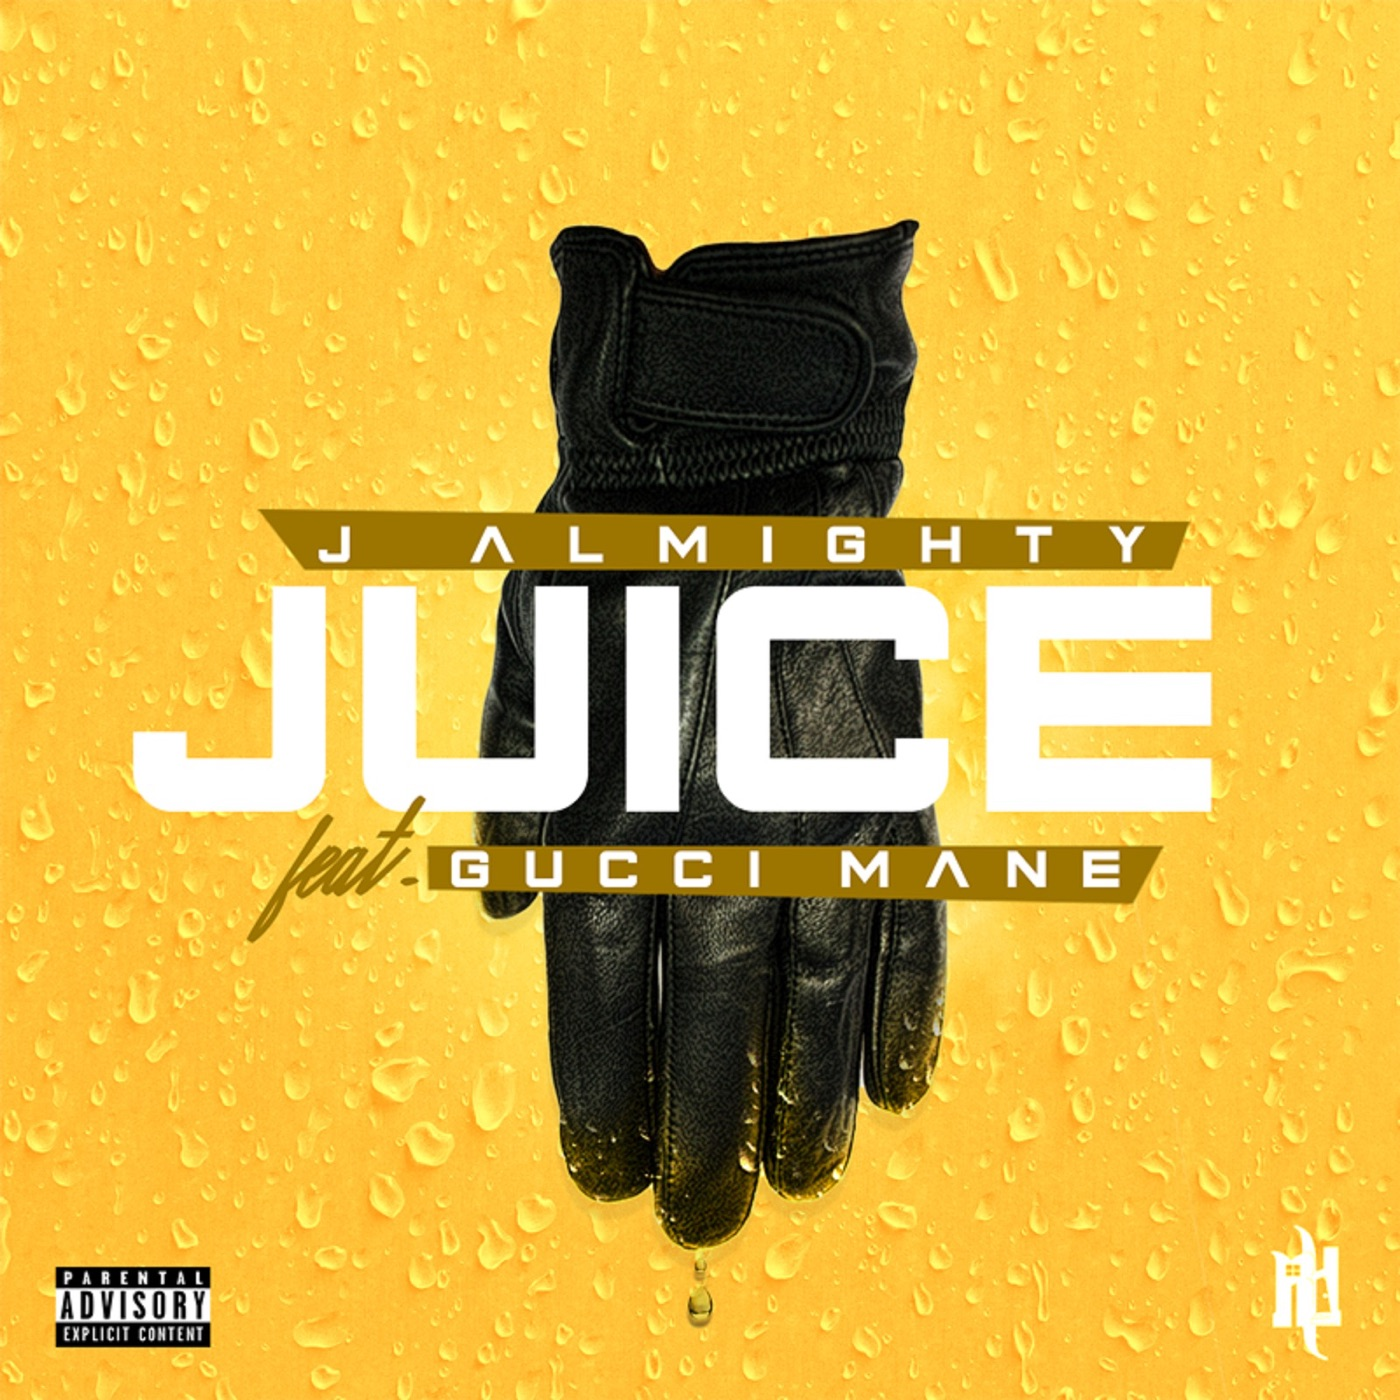 J Almighty - Juice (feat. Gucci Mane) - Single Cover